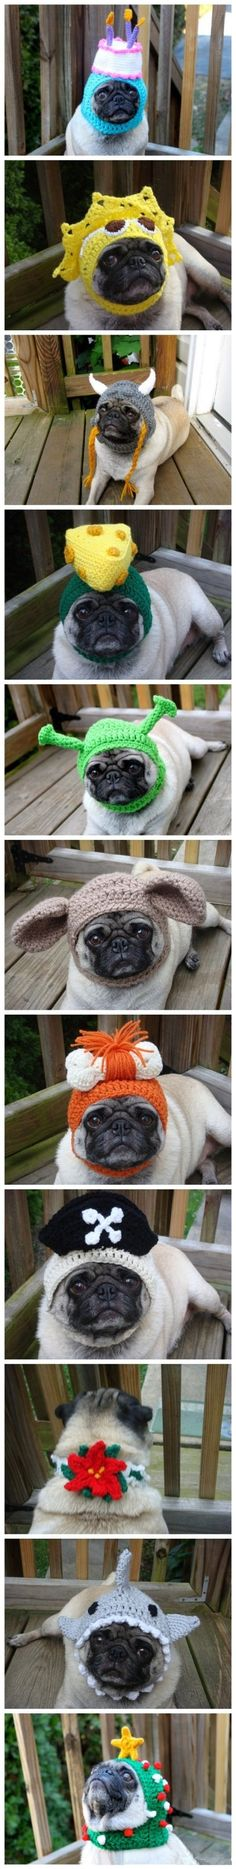 Puppy with hats